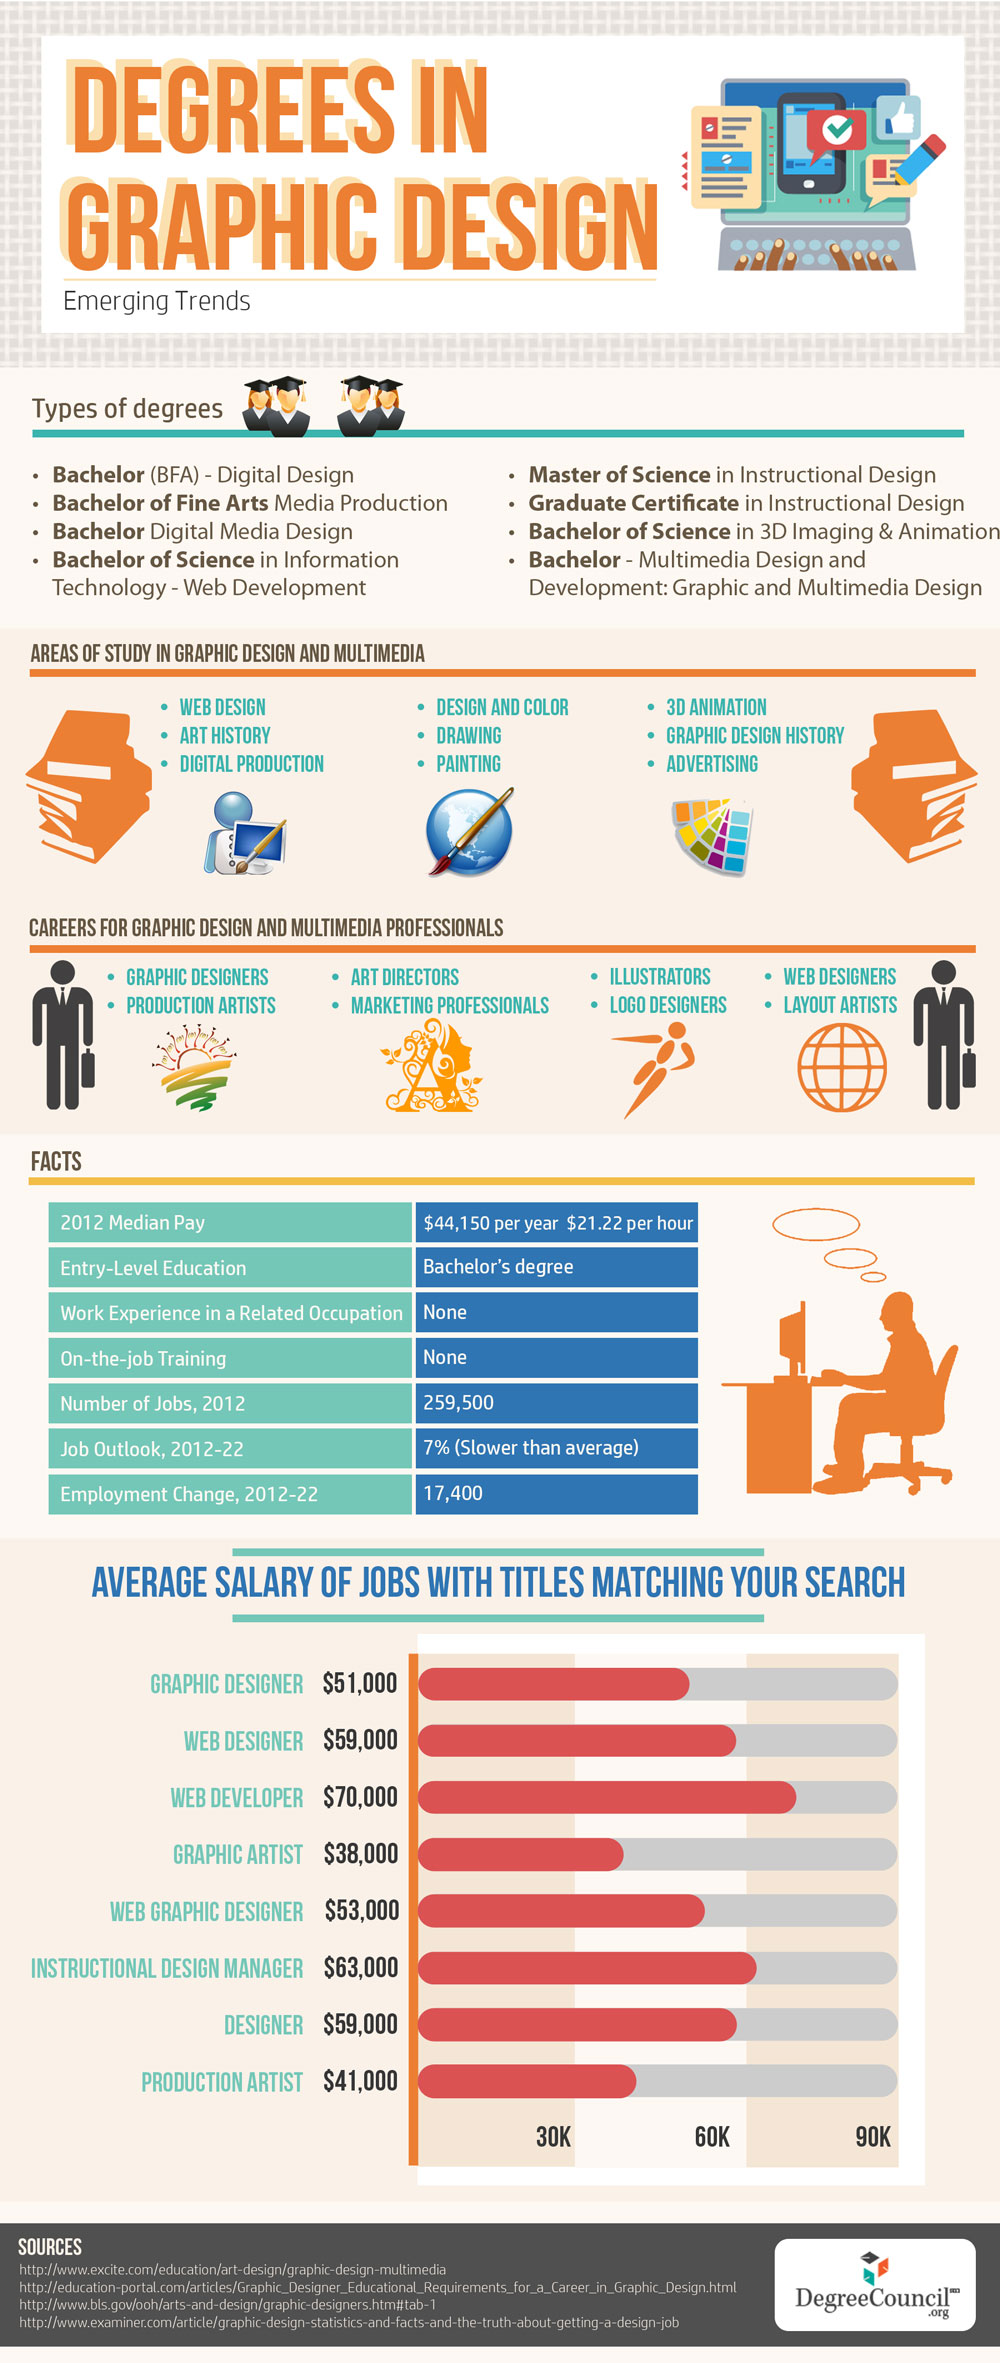 Web Design best majors for jobs